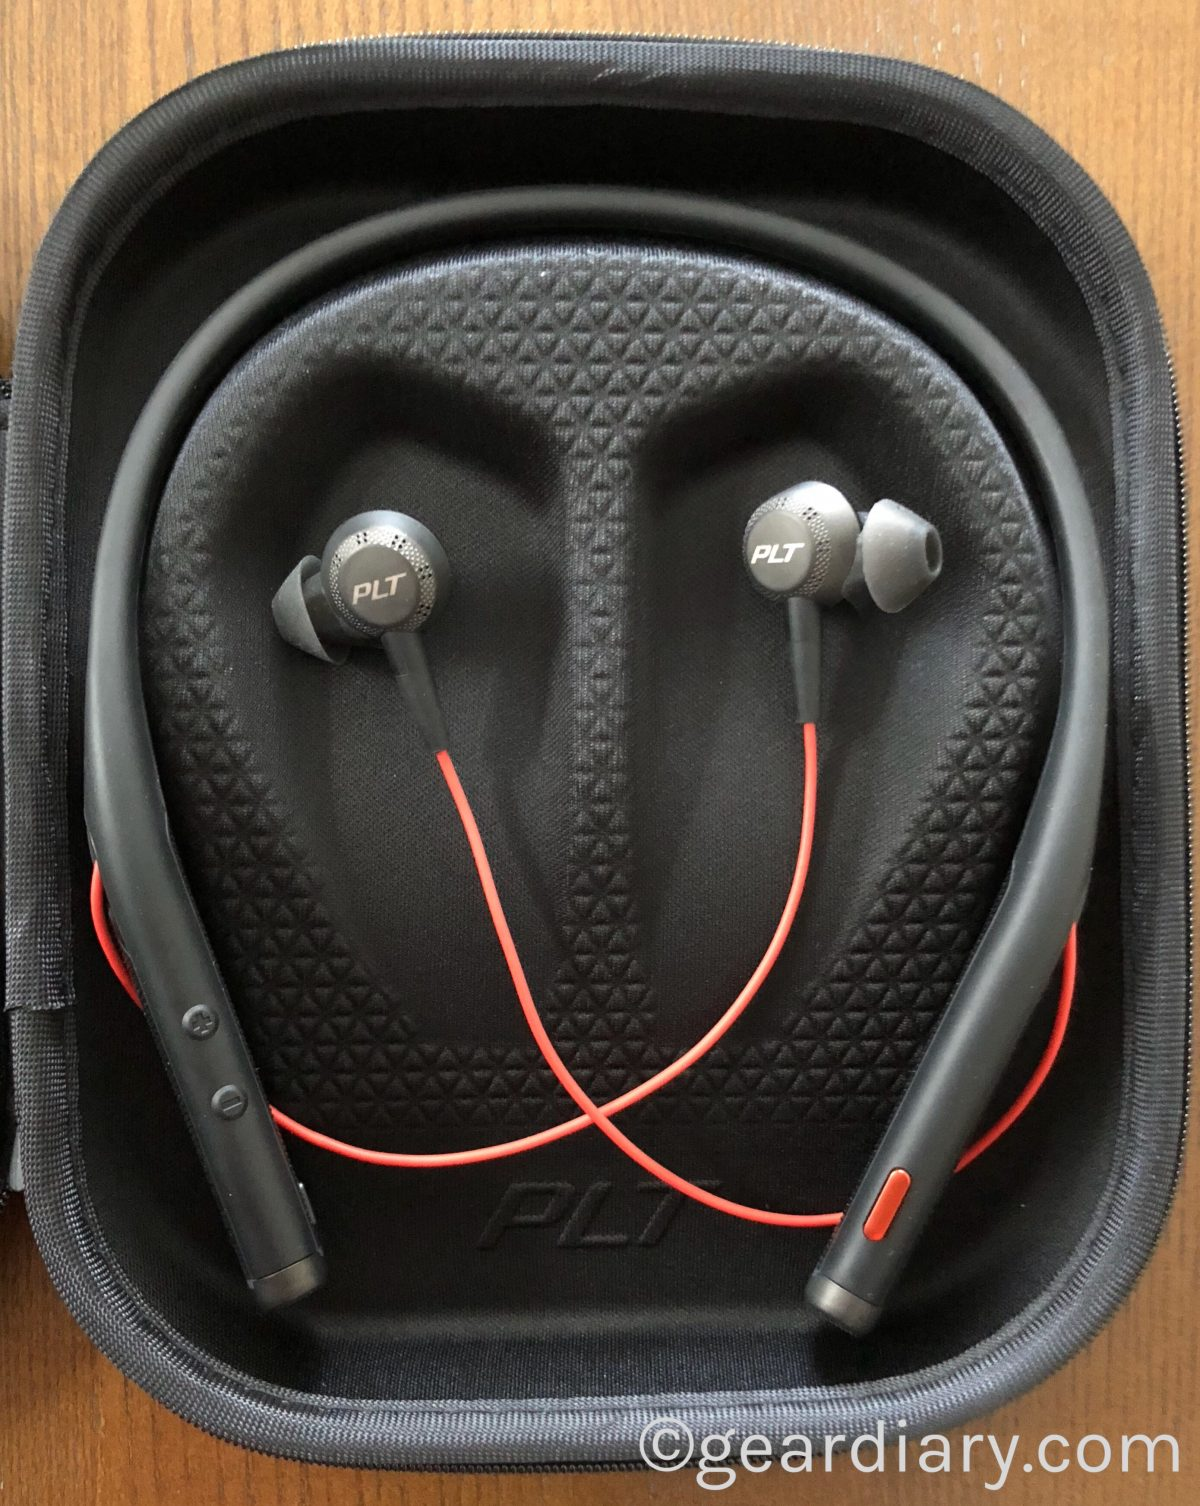 7ce2b9f2d06 The Plantronics Voyager 6200 UC Neckband Headset Means Business